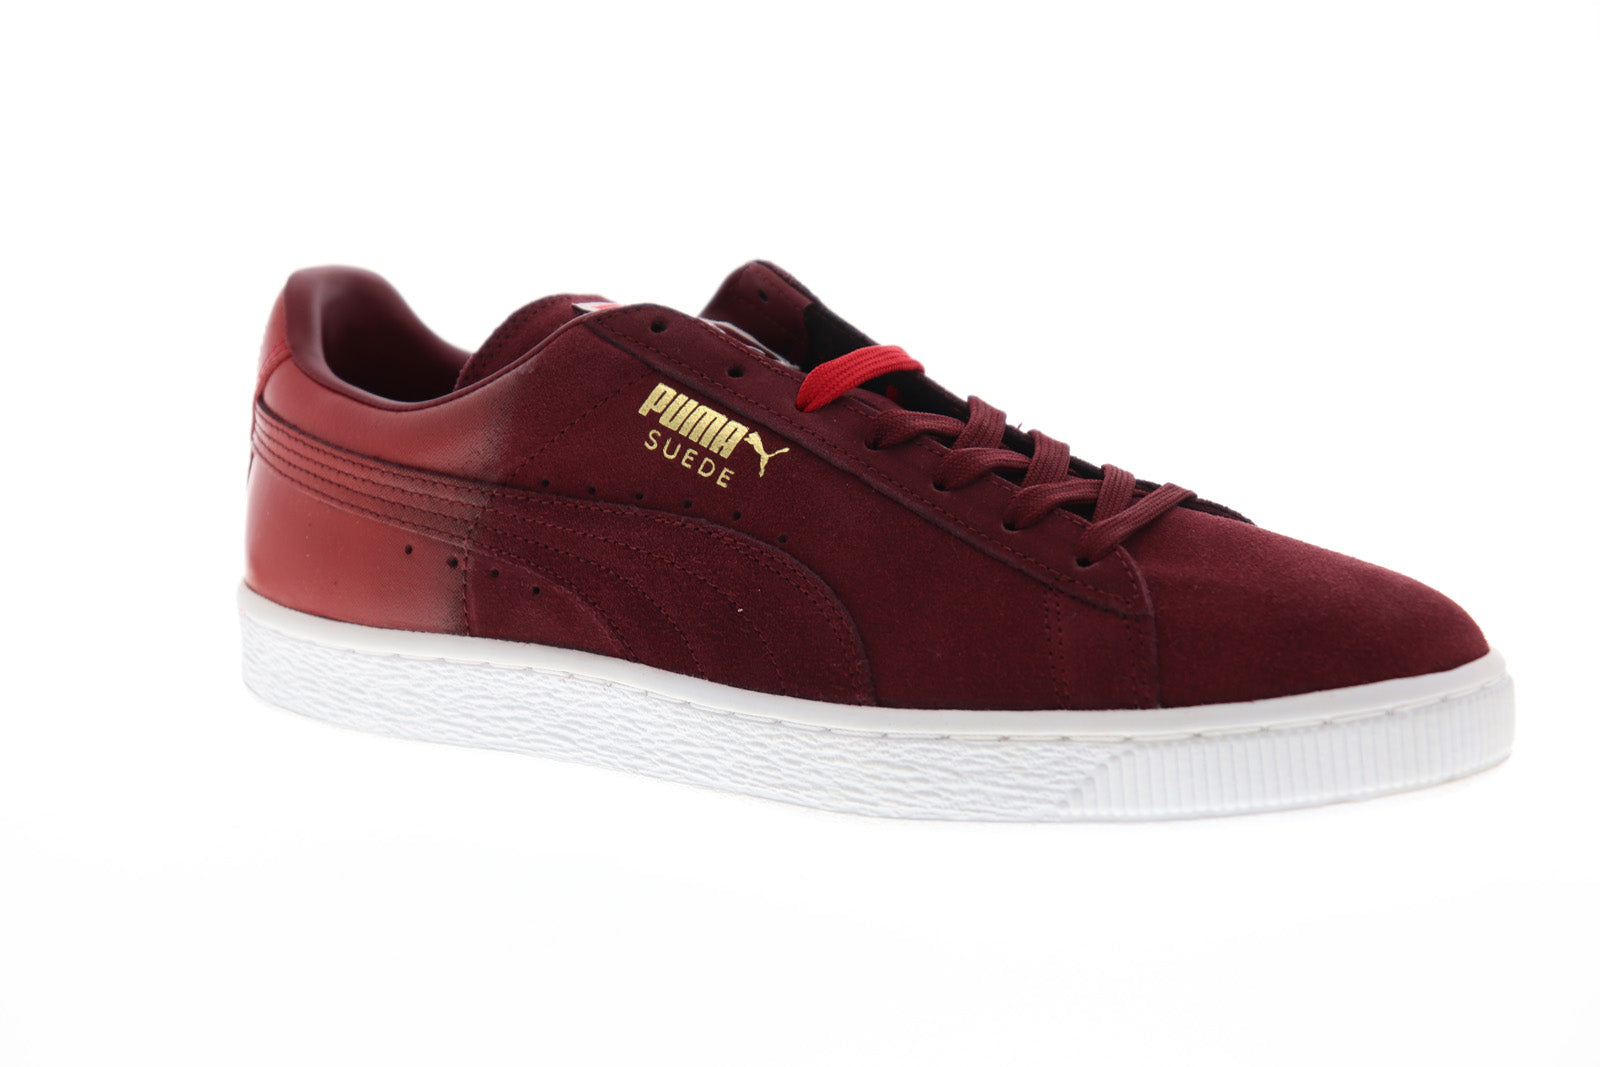 Mens Red Sneakers Up Puma Low Lace Suede Top Shoes ClassicBlur PikXZu